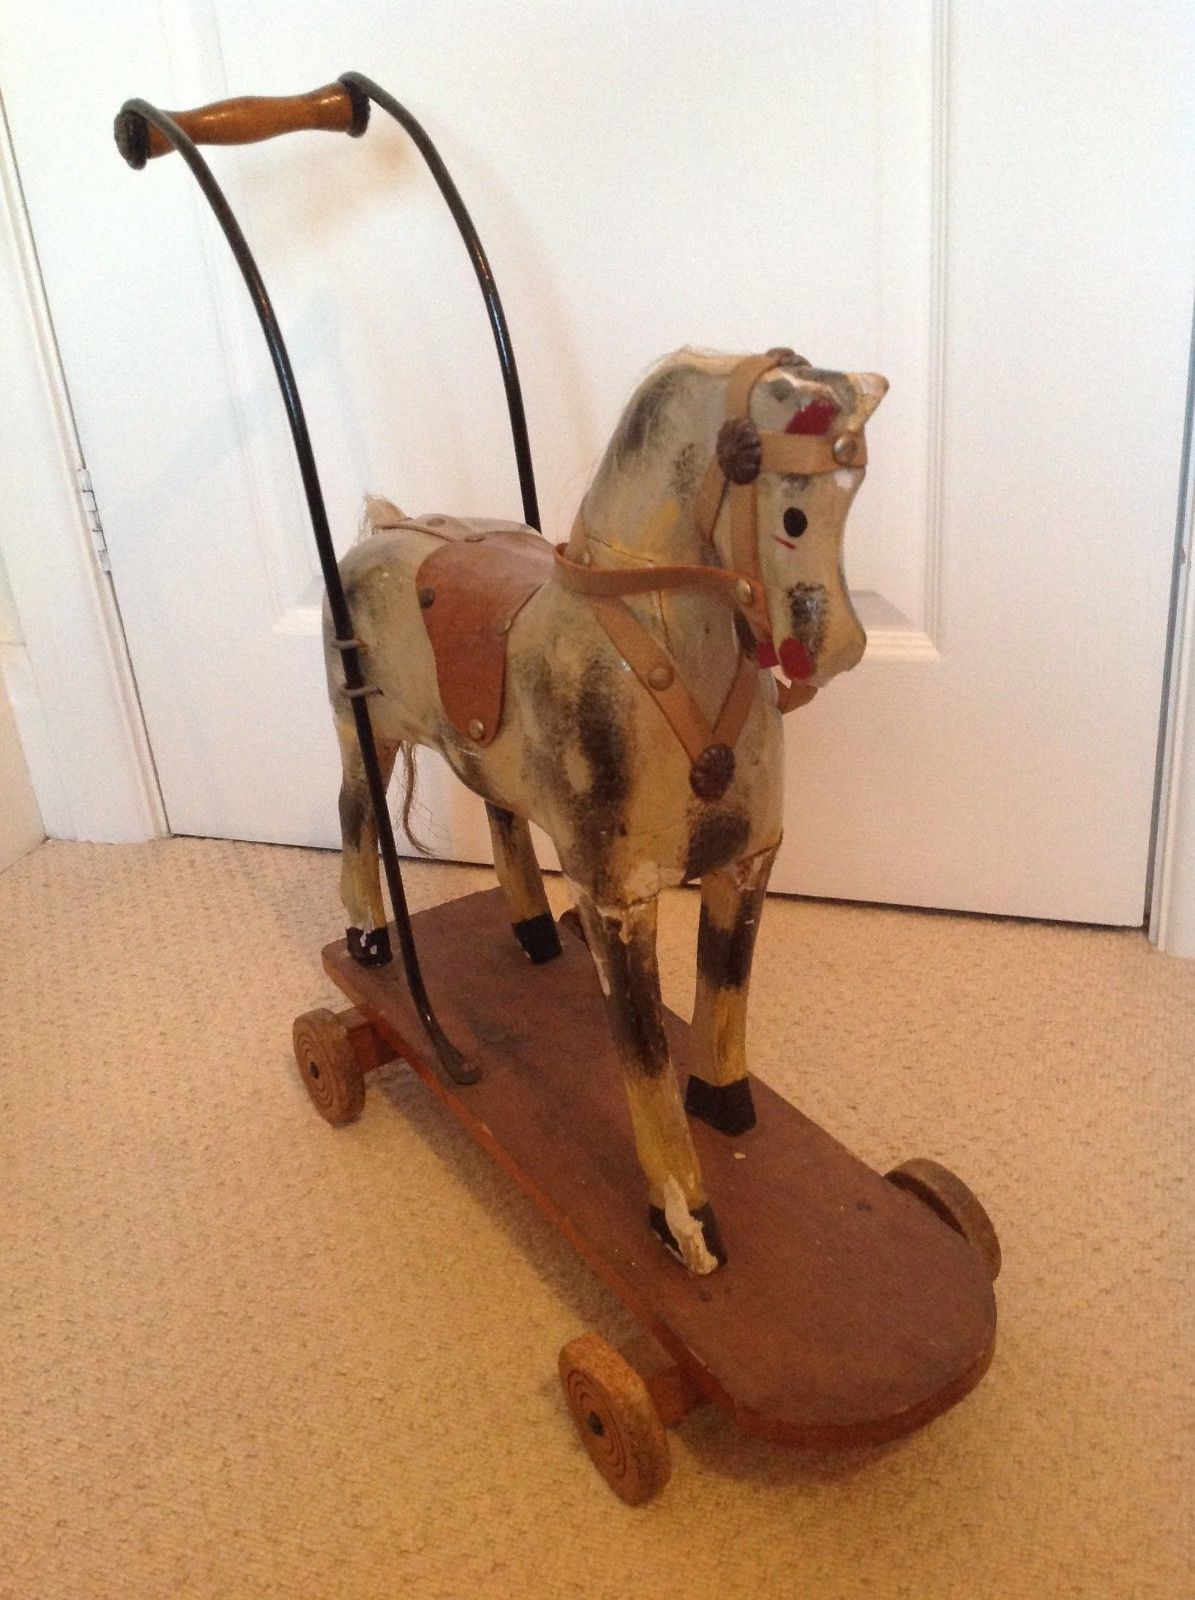 Antique push horse toy wood & gesso